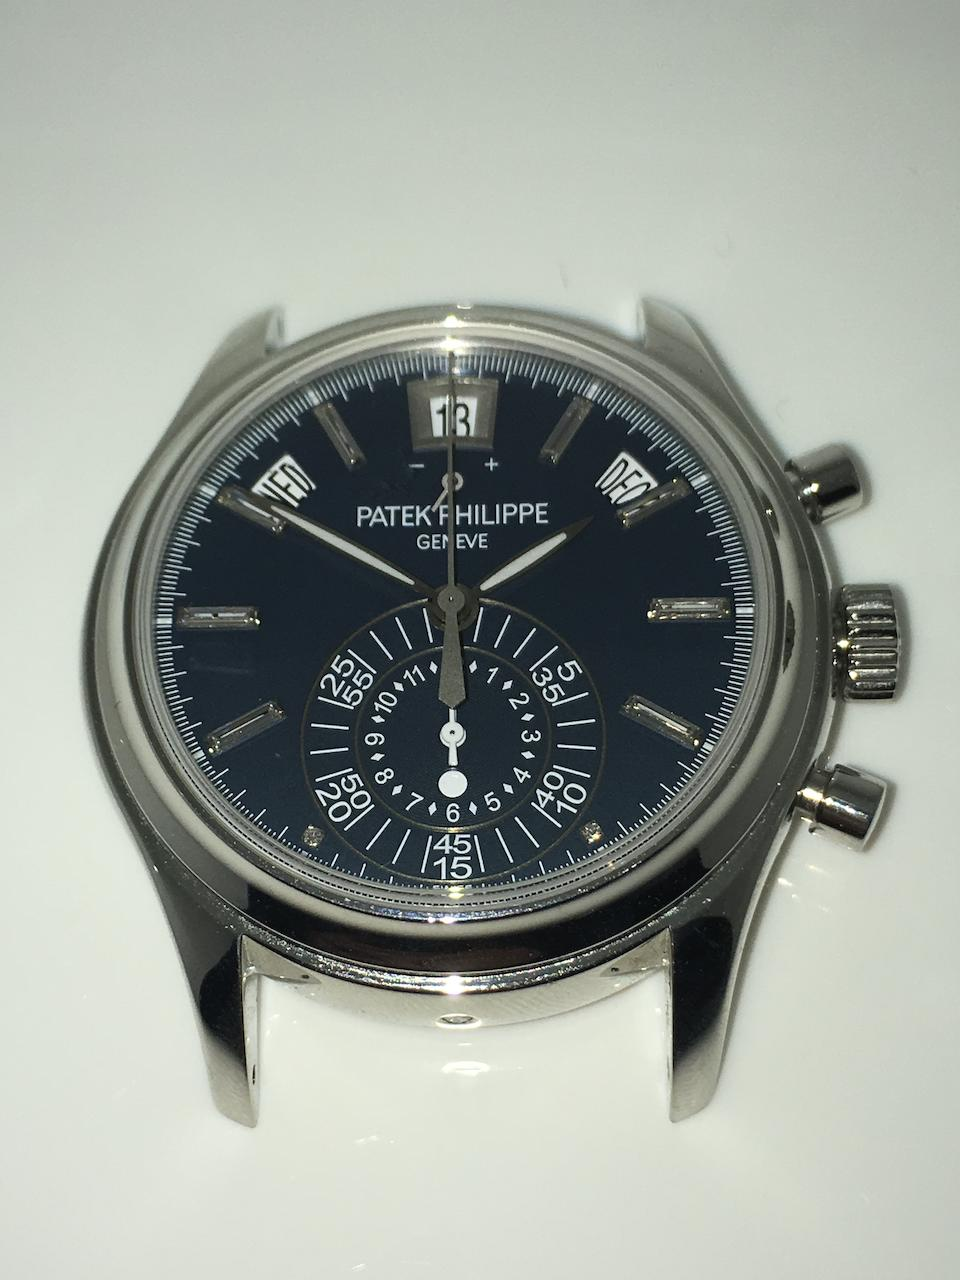 Patek Philippe. A fine platinum automatic annual calendar chronograph wristwatch with power reserve and possibly unique dial Ref: 5960P-020, Sold 10th June 2013